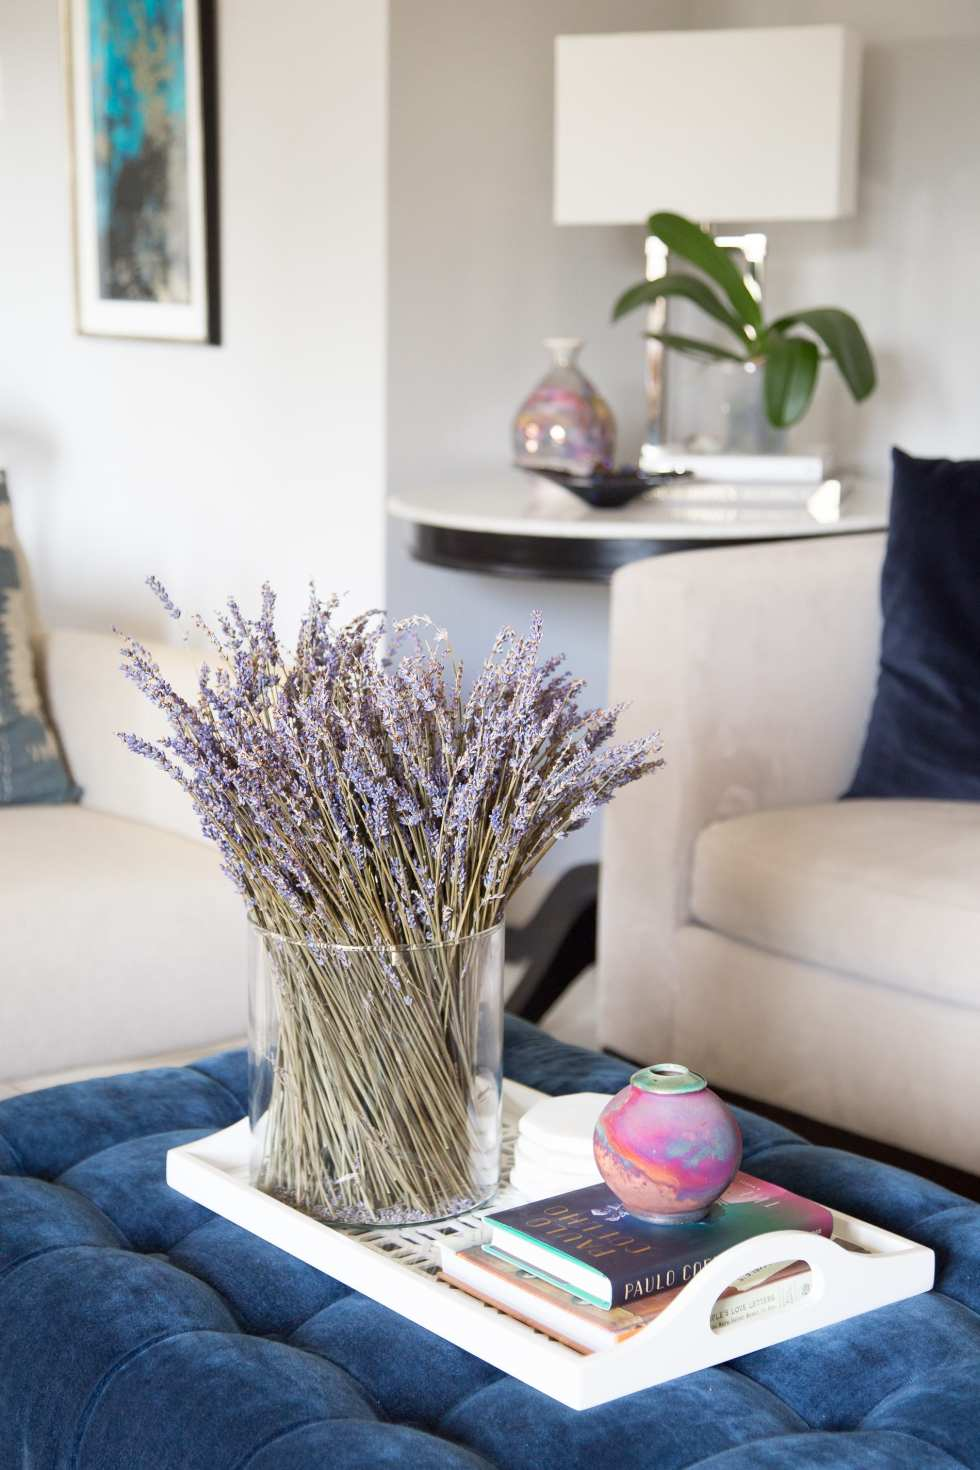 20 Purple Accessories For Your Home   THE DESIGN SOUK   www.thedesignsouk.com